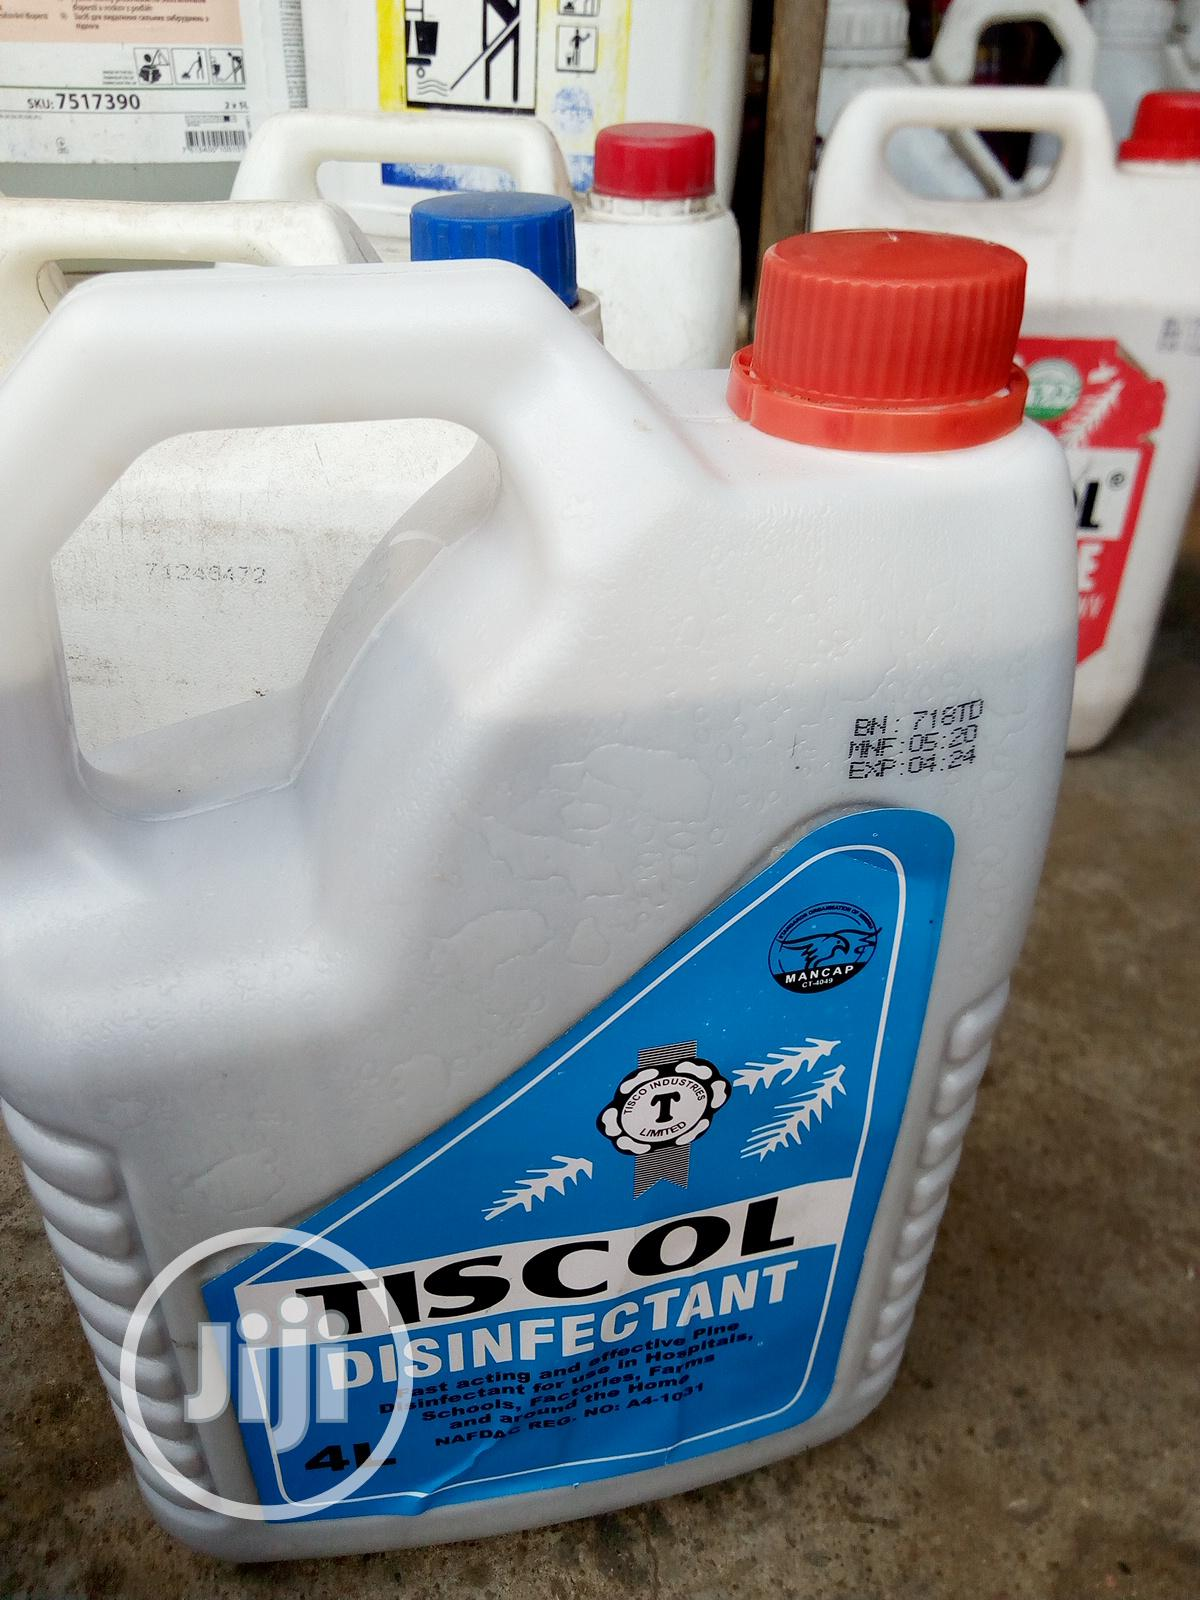 Archive: Tiscol Disinfectant 4 Litres